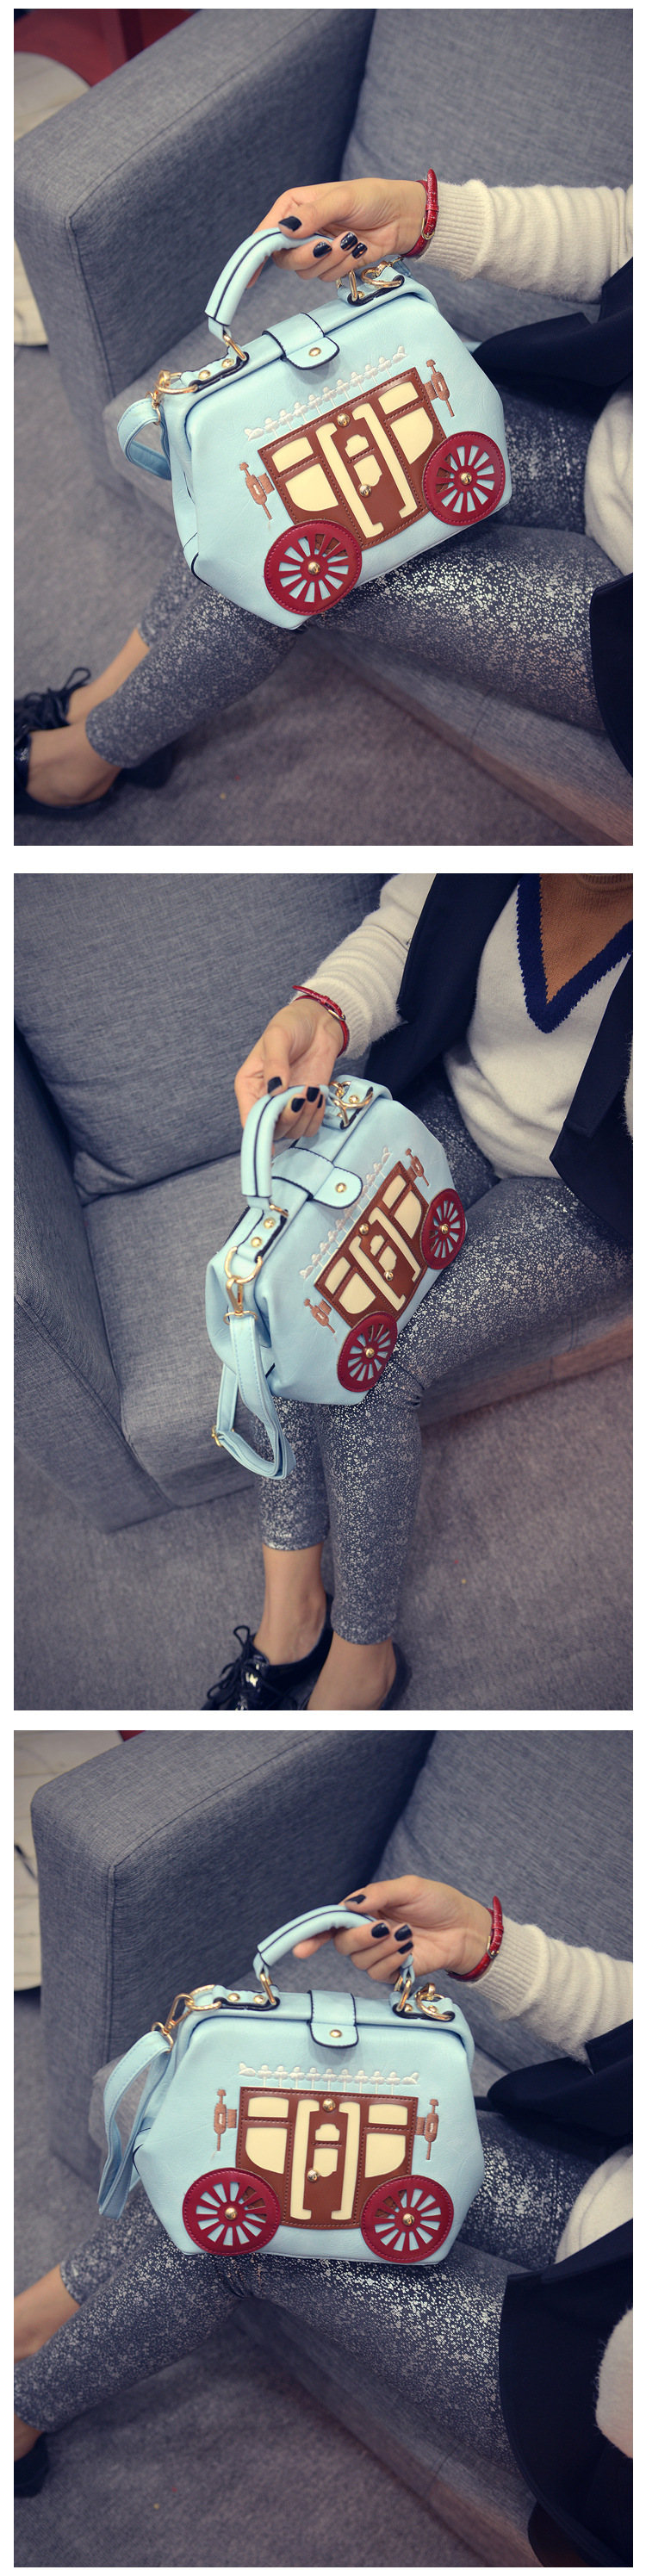 2017 Spring Women Bag Ladies Designer Handbags High Quality PU Leather Doctor Bags Women Messenger Bags Shoulder sac a main